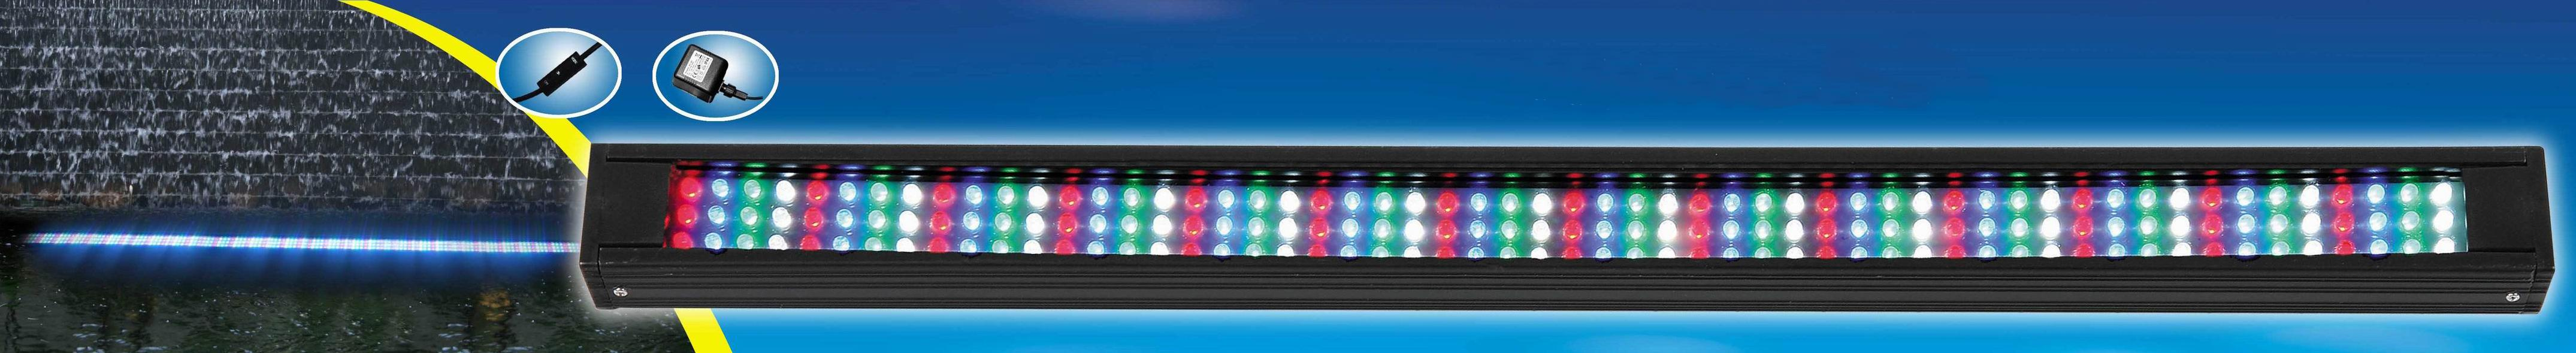 QL-24 168 LED garden submersible wall washer